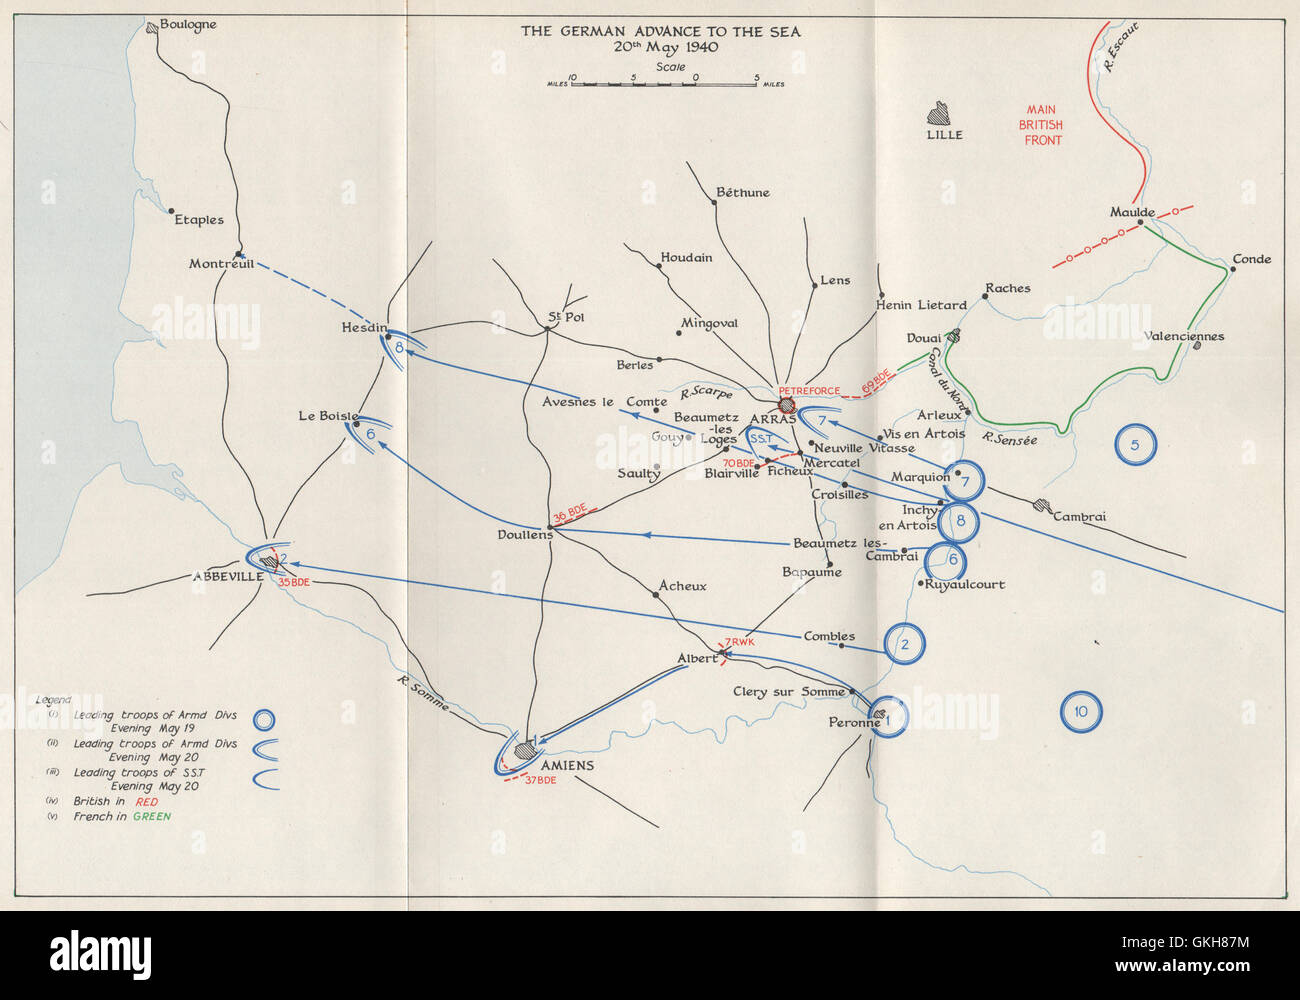 Map Of France 1940.Fall Of France 1940 German Advance To The Sea 20 May Arras Stock